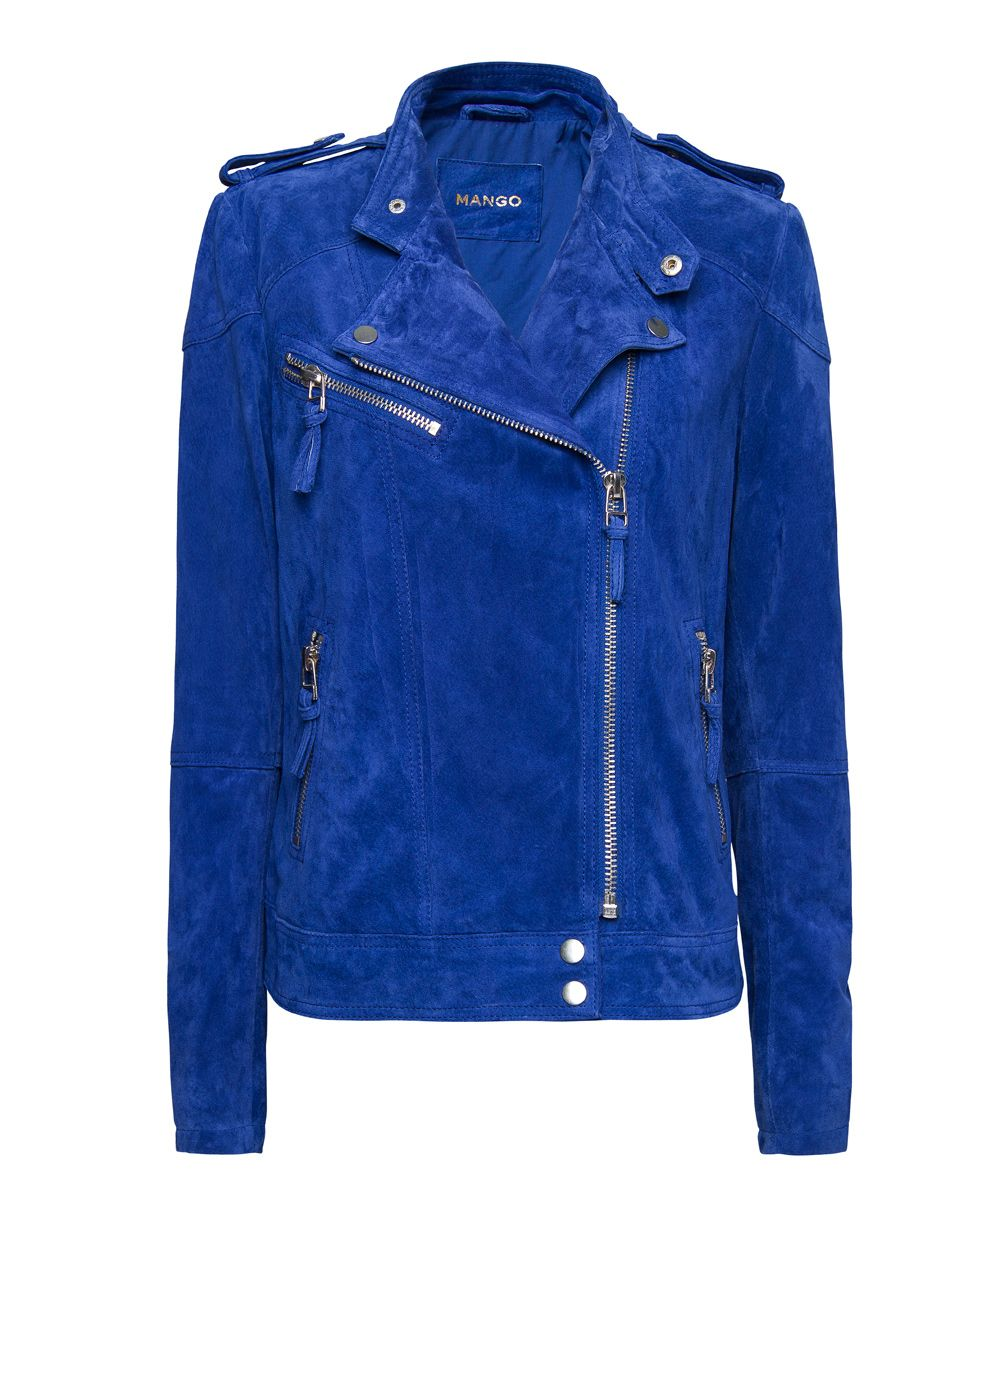 916f7d46ba9 Suede biker jacket - Women   my life would be better if i had ...